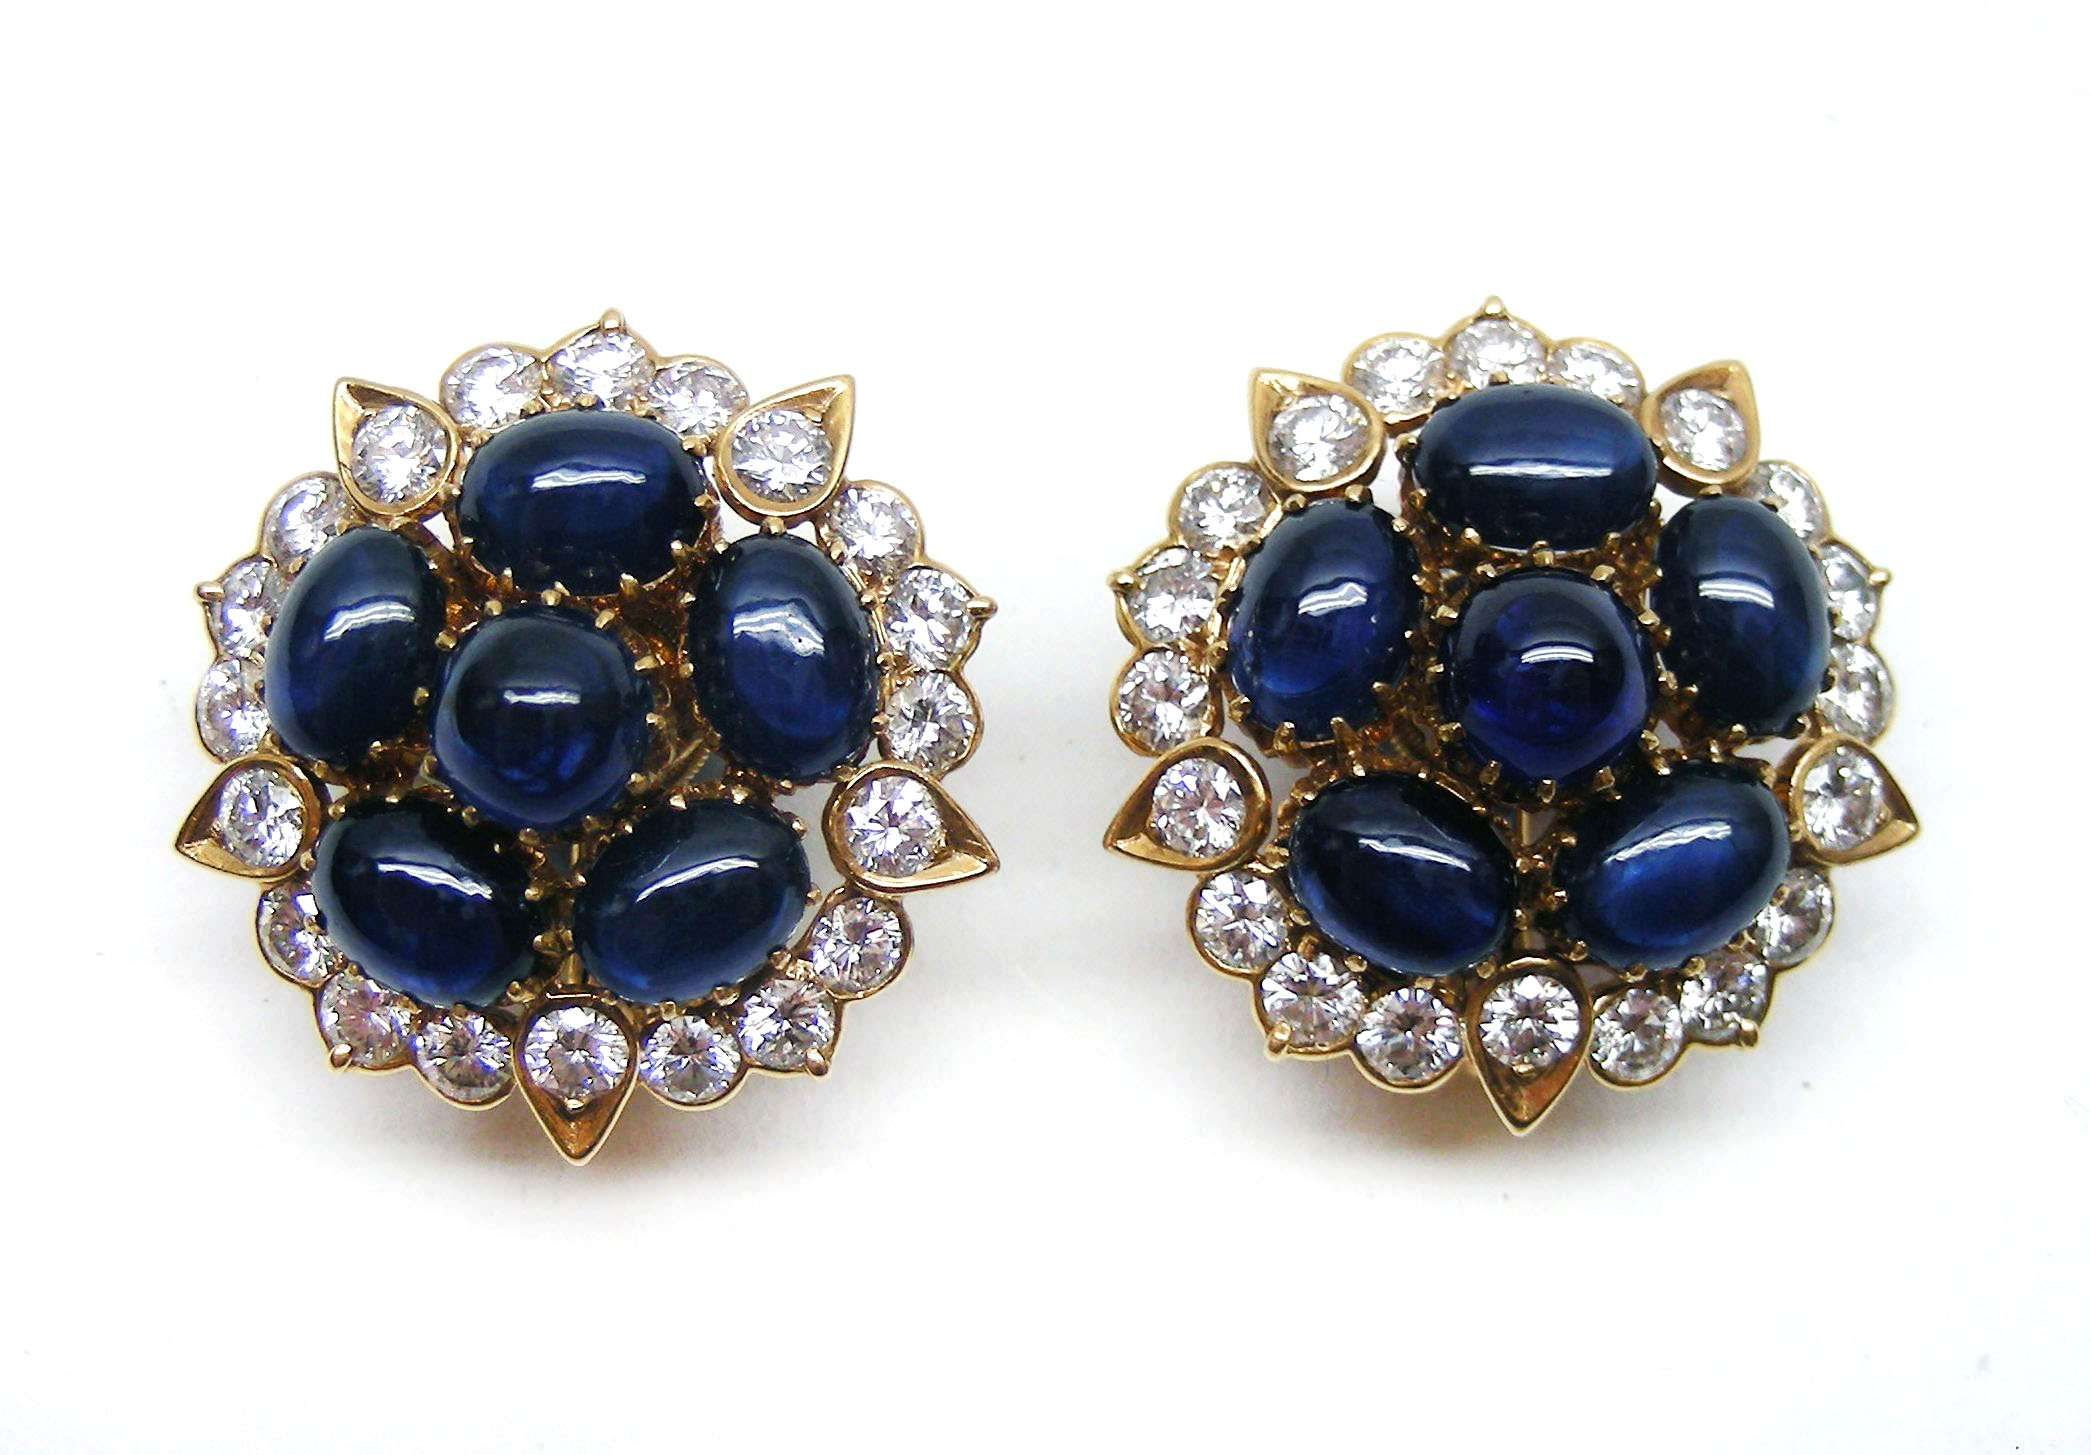 Pair of sapphire and diamond earrings by Cartier Paris designed